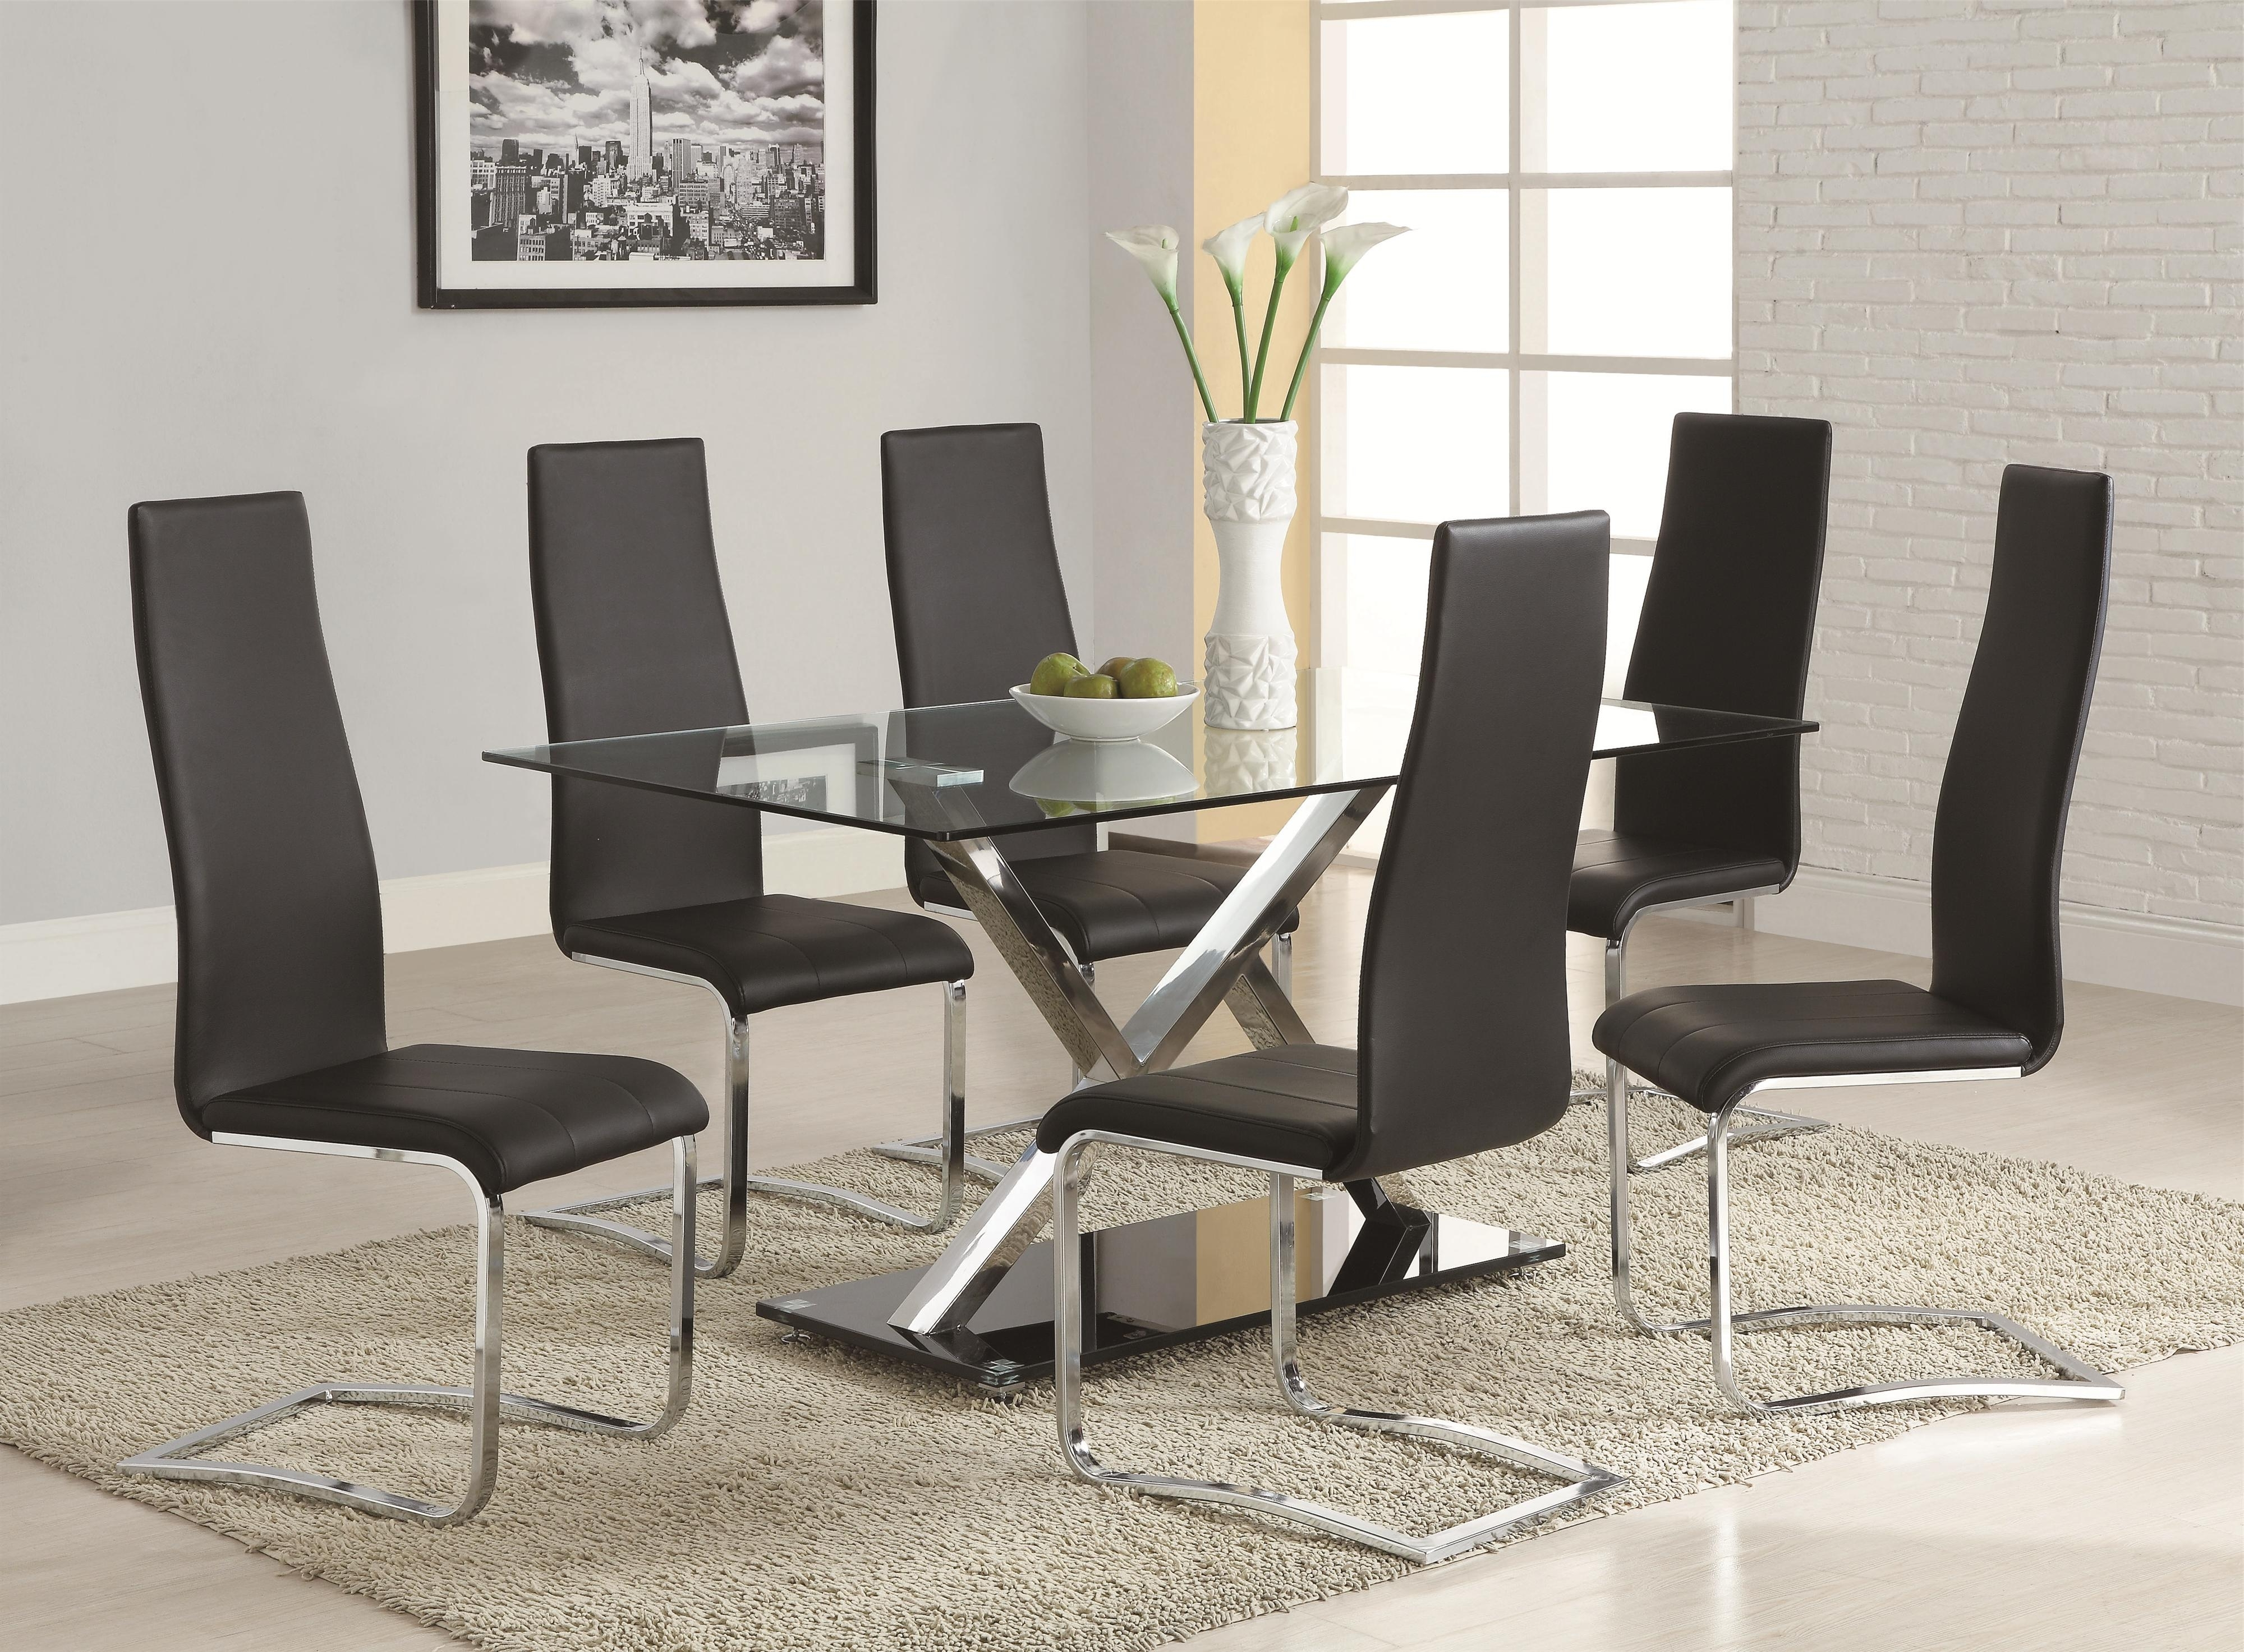 Most Recent Dining Table Chair Sets In Coaster Modern Dining Contemporary Dining Room Set (View 8 of 25)